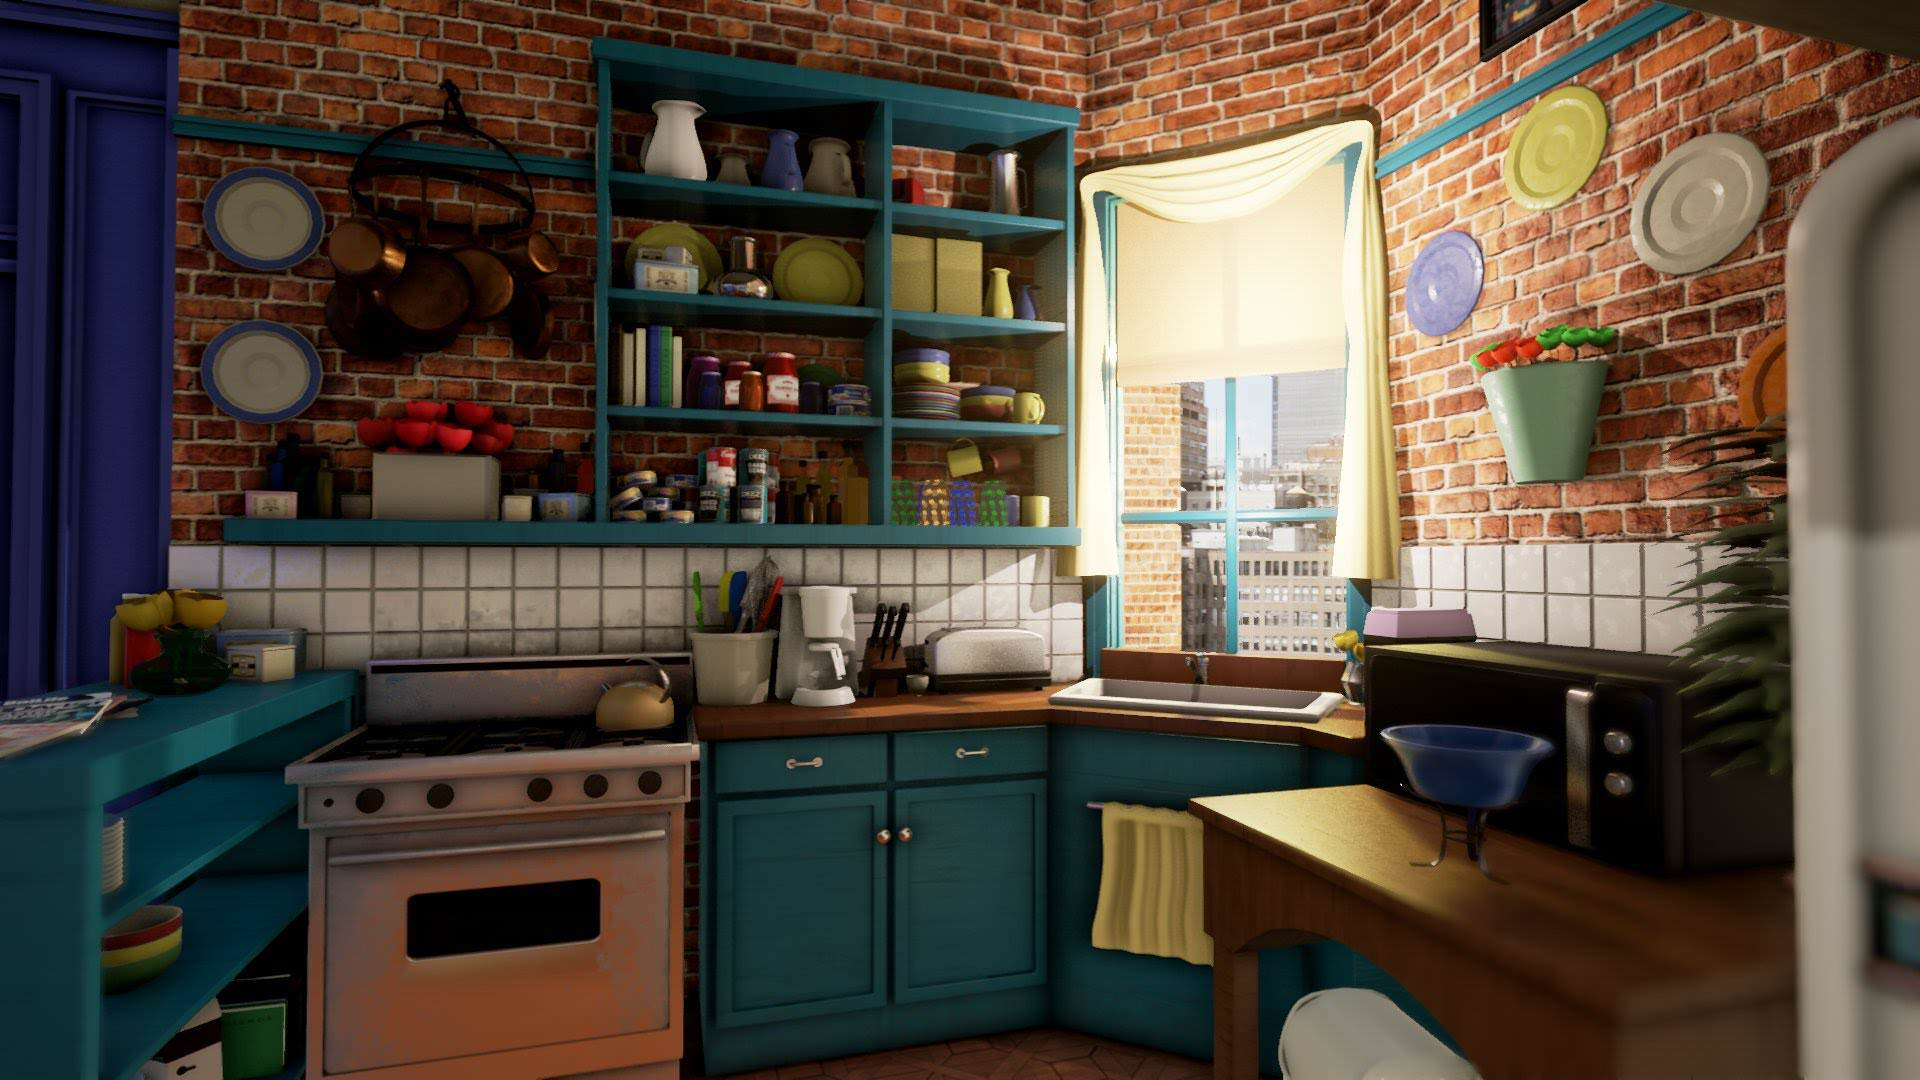 Iconic Friends Location Recreated In Unreal Engine 4 maxresdefault 1 2